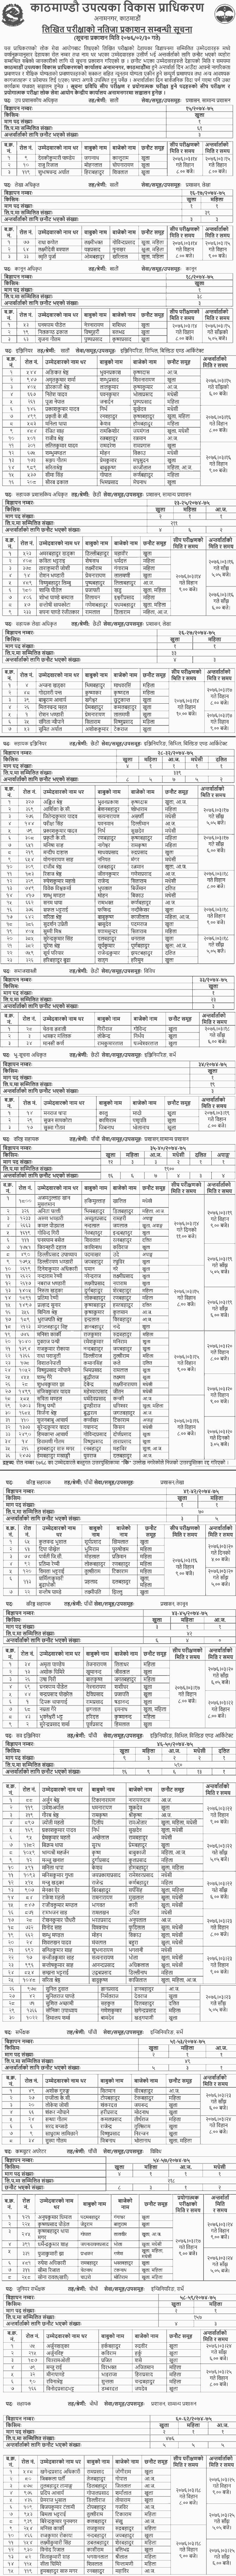 Kathmandu Valley Development Authority KVDA Written Exam Result